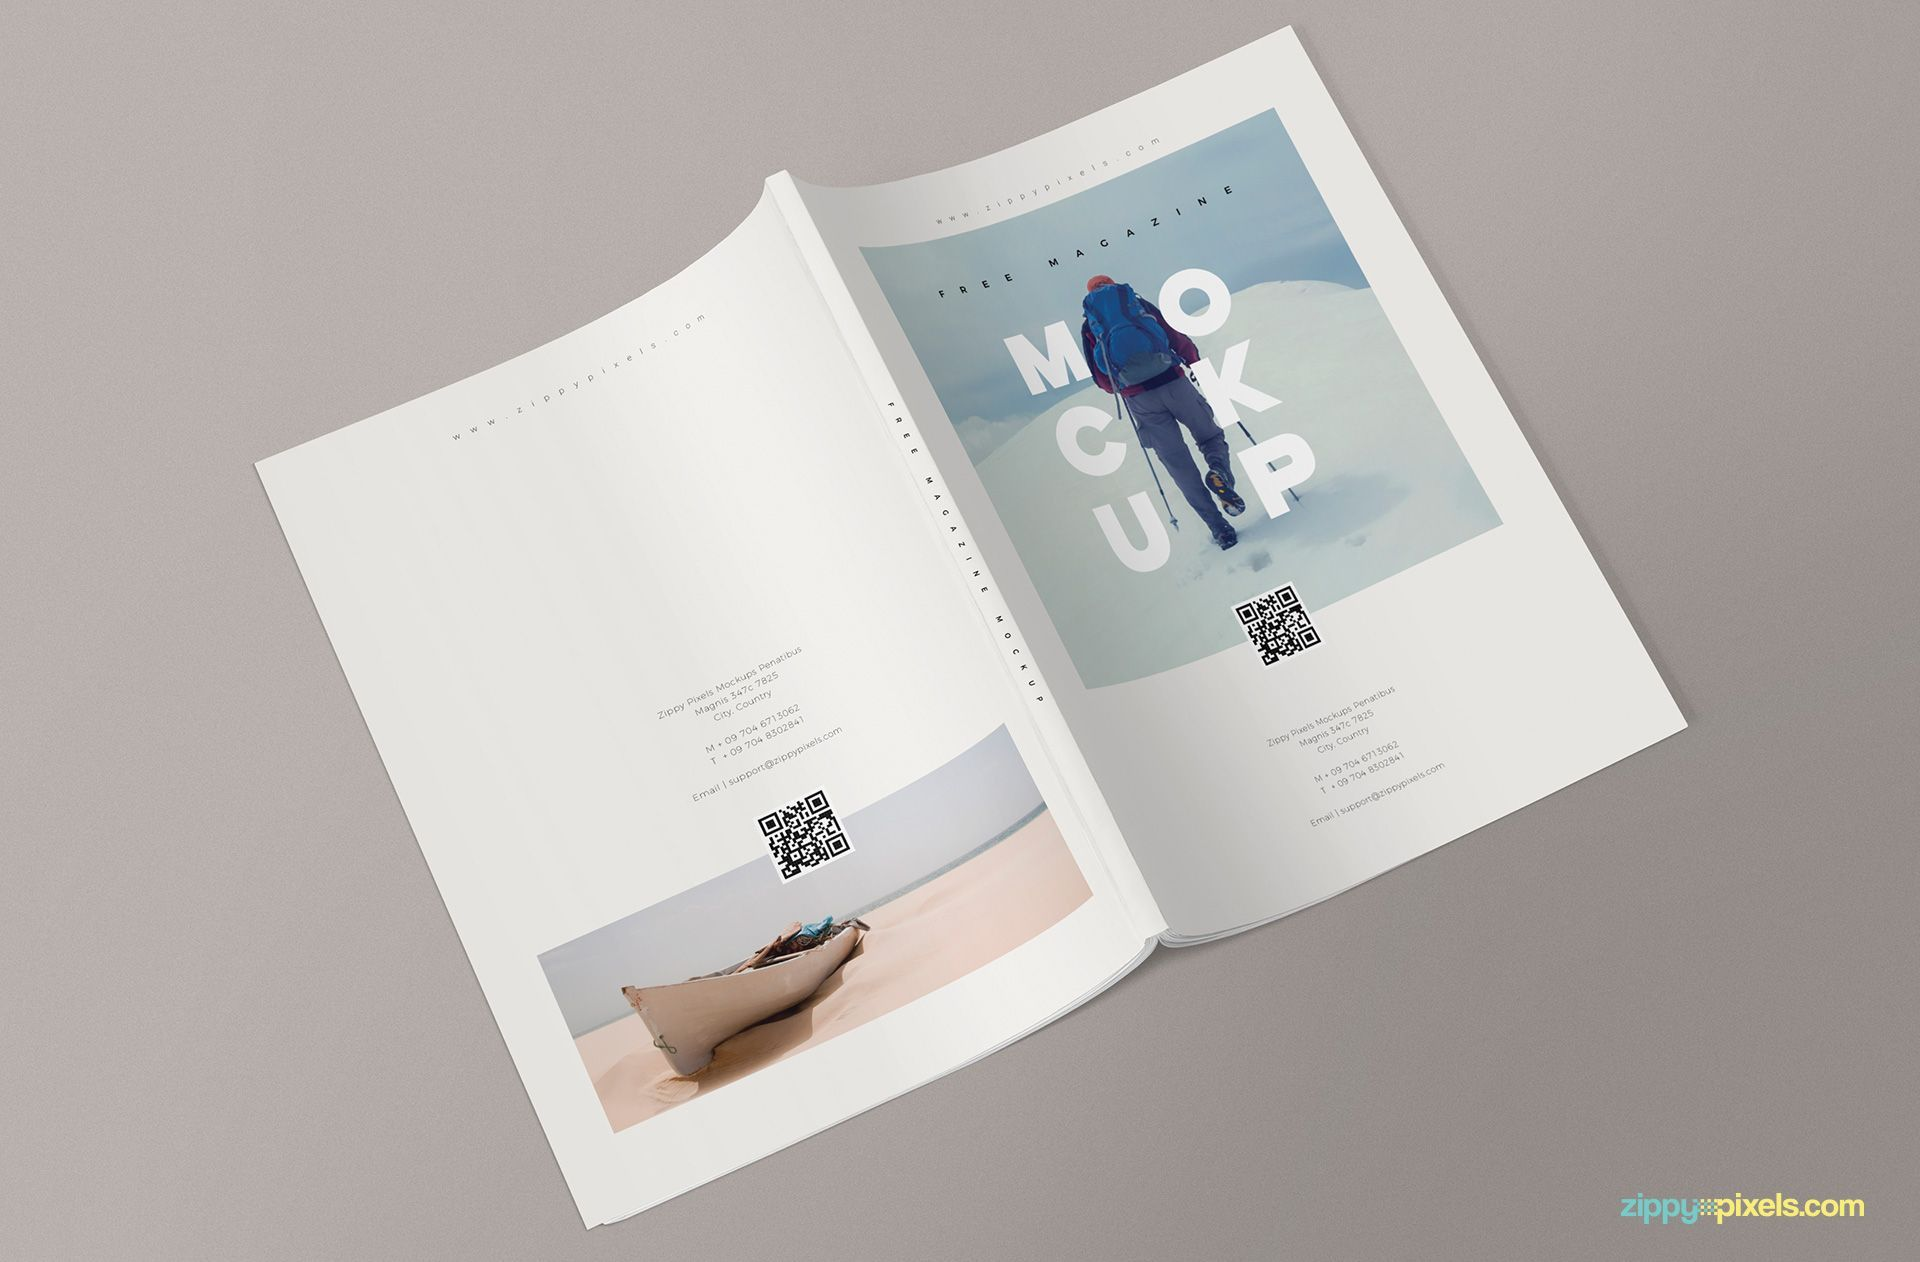 002 Amazing Photoshop Magazine Layout Template Free Download Concept Full